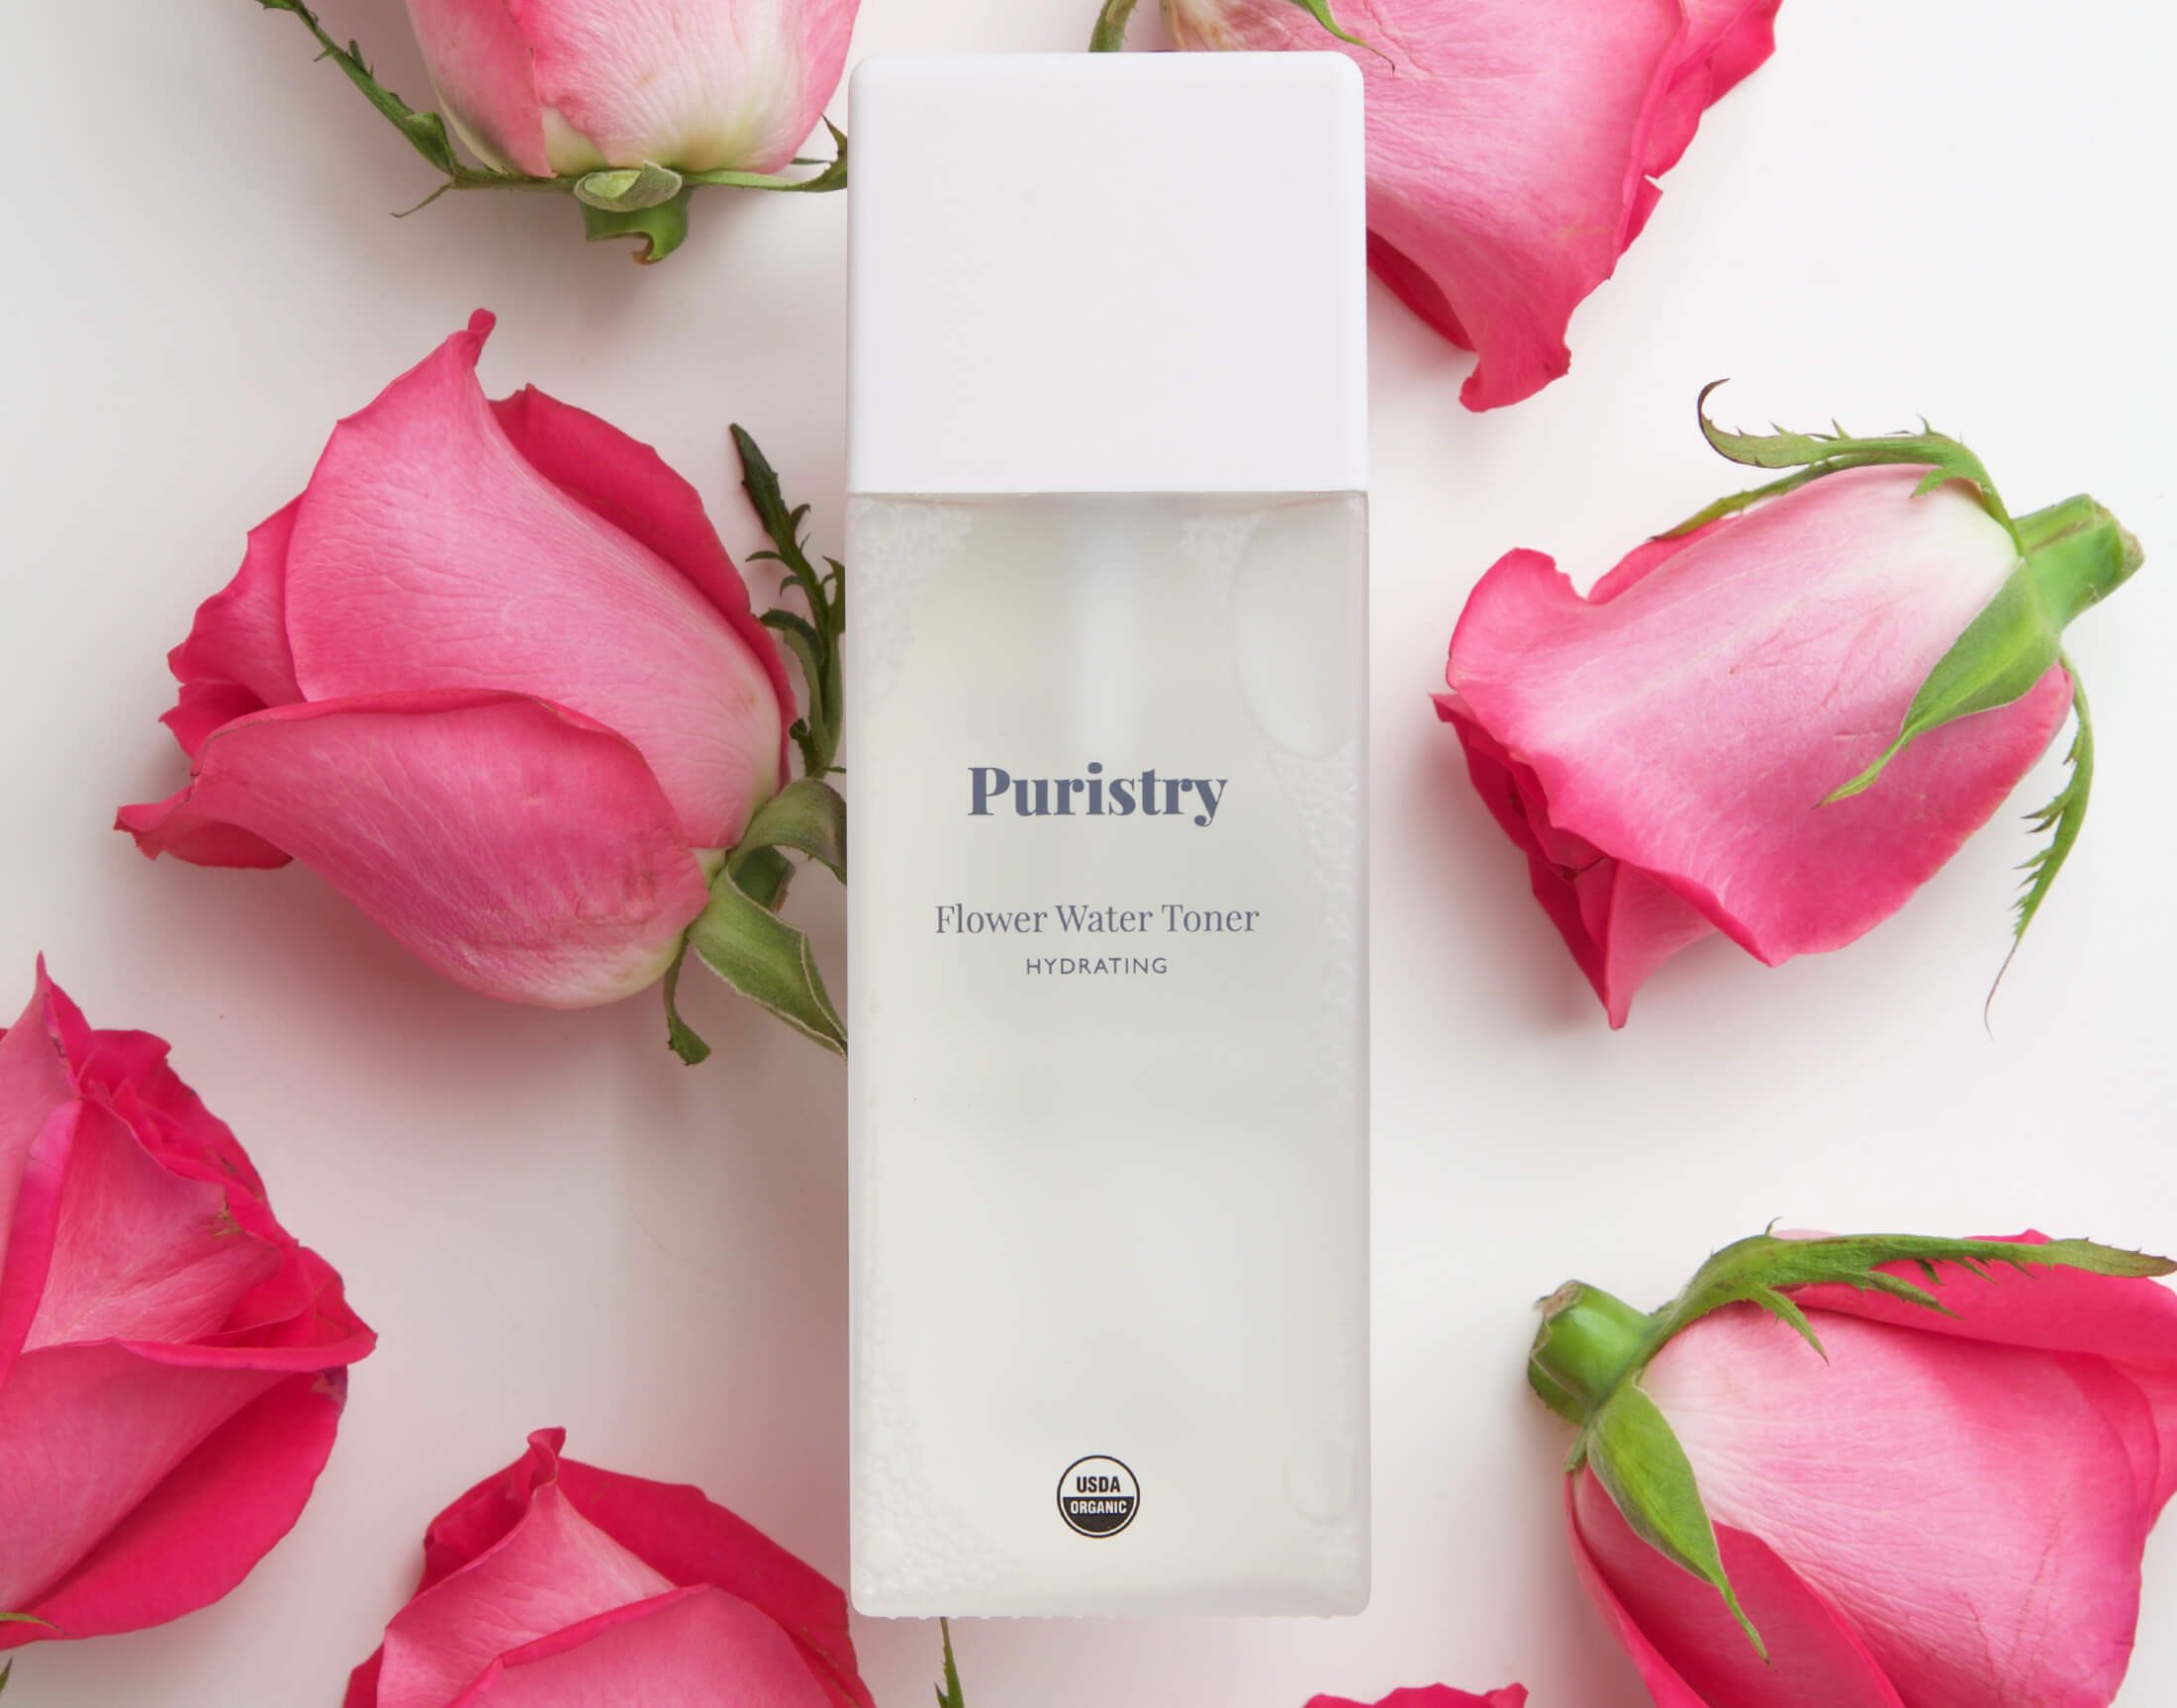 Puristry FLower Water Toner